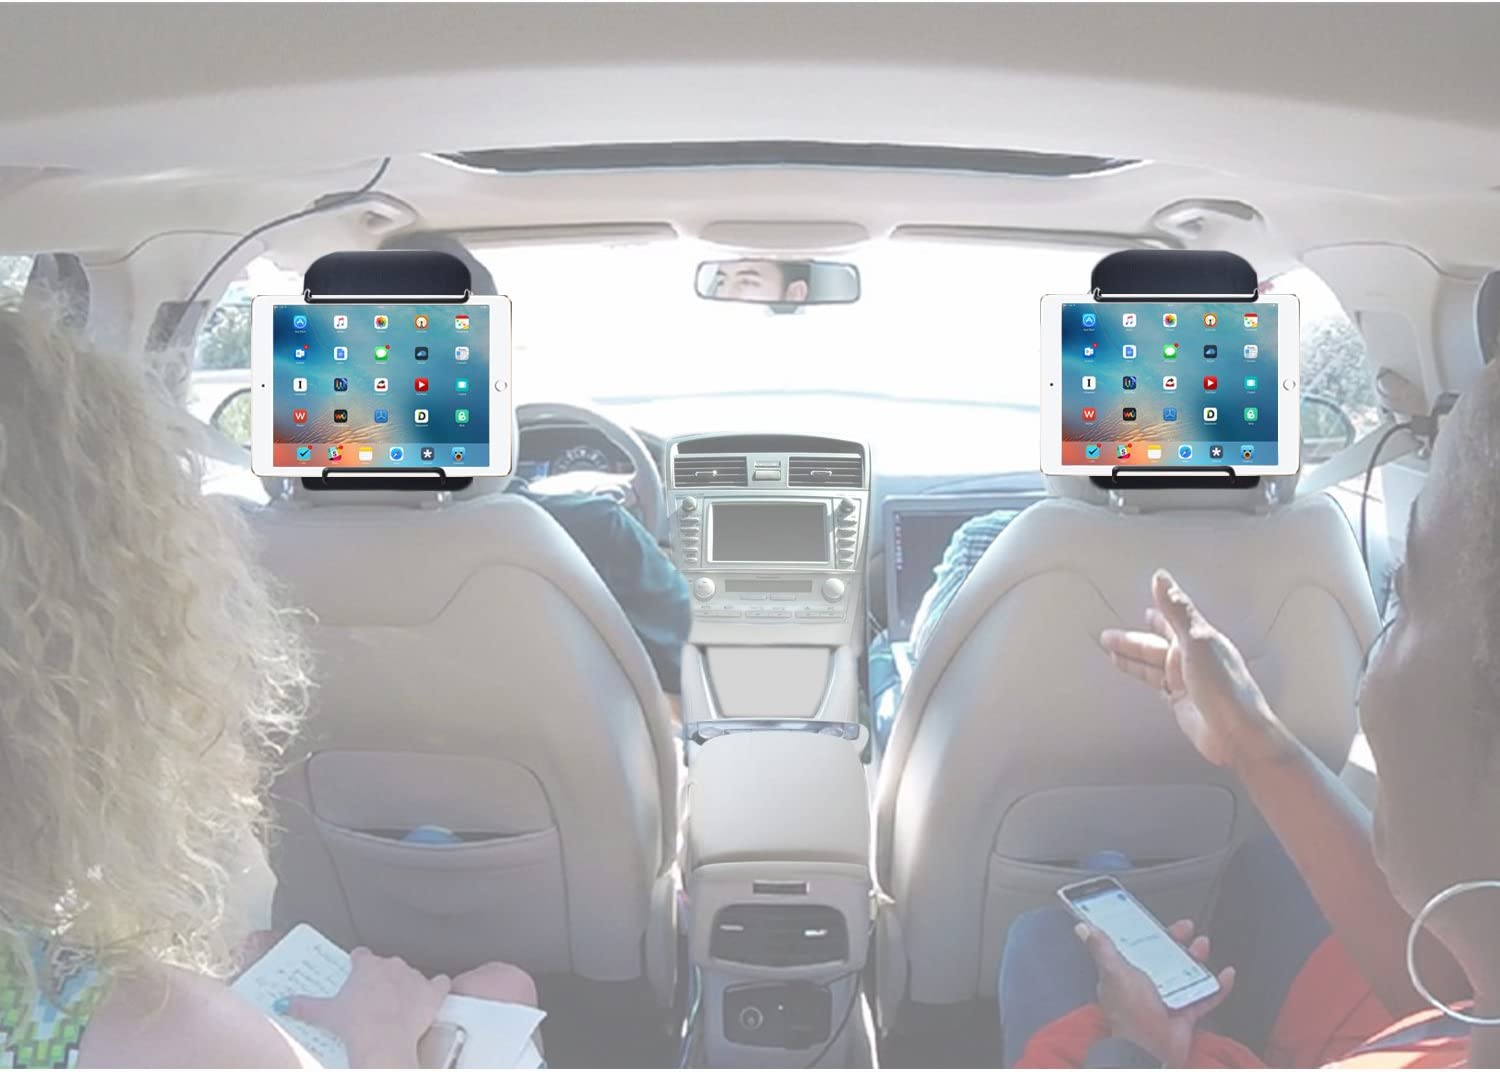 Car Headrest Mount Holder TFY Universal Car Headrest Mount Holder with Angle Adjustable Holding Clamp for 6-12.9 Inch Tablets 2 Pieces